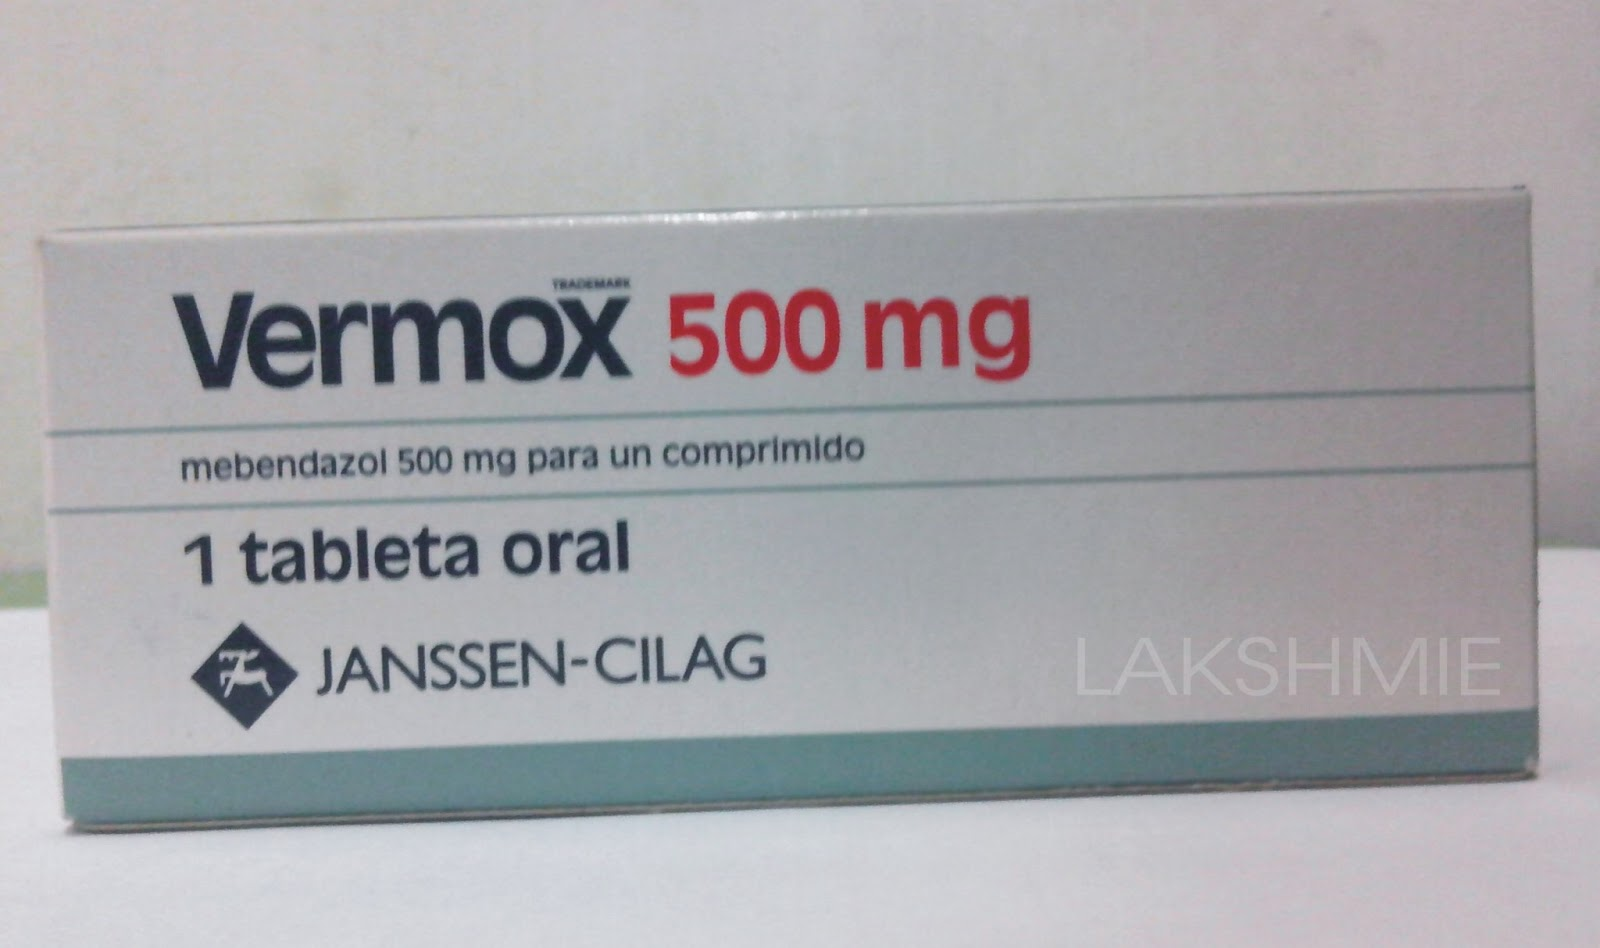 Vermox tablets: instructions for use 20